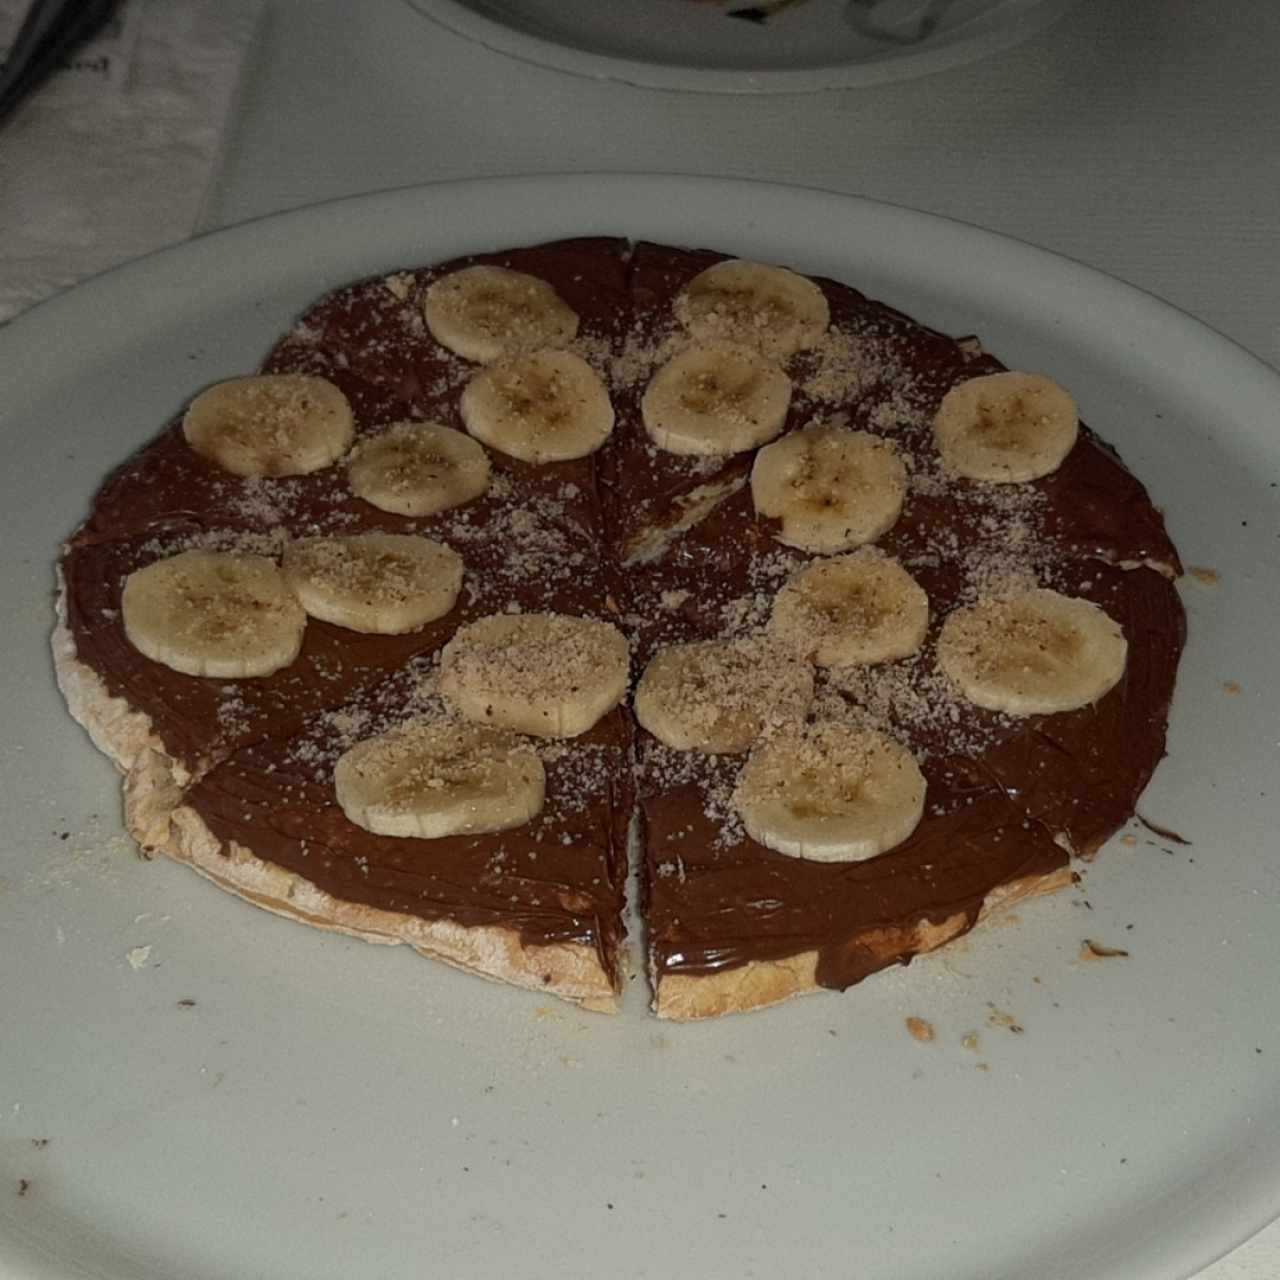 Pizza con Nutella y Banano